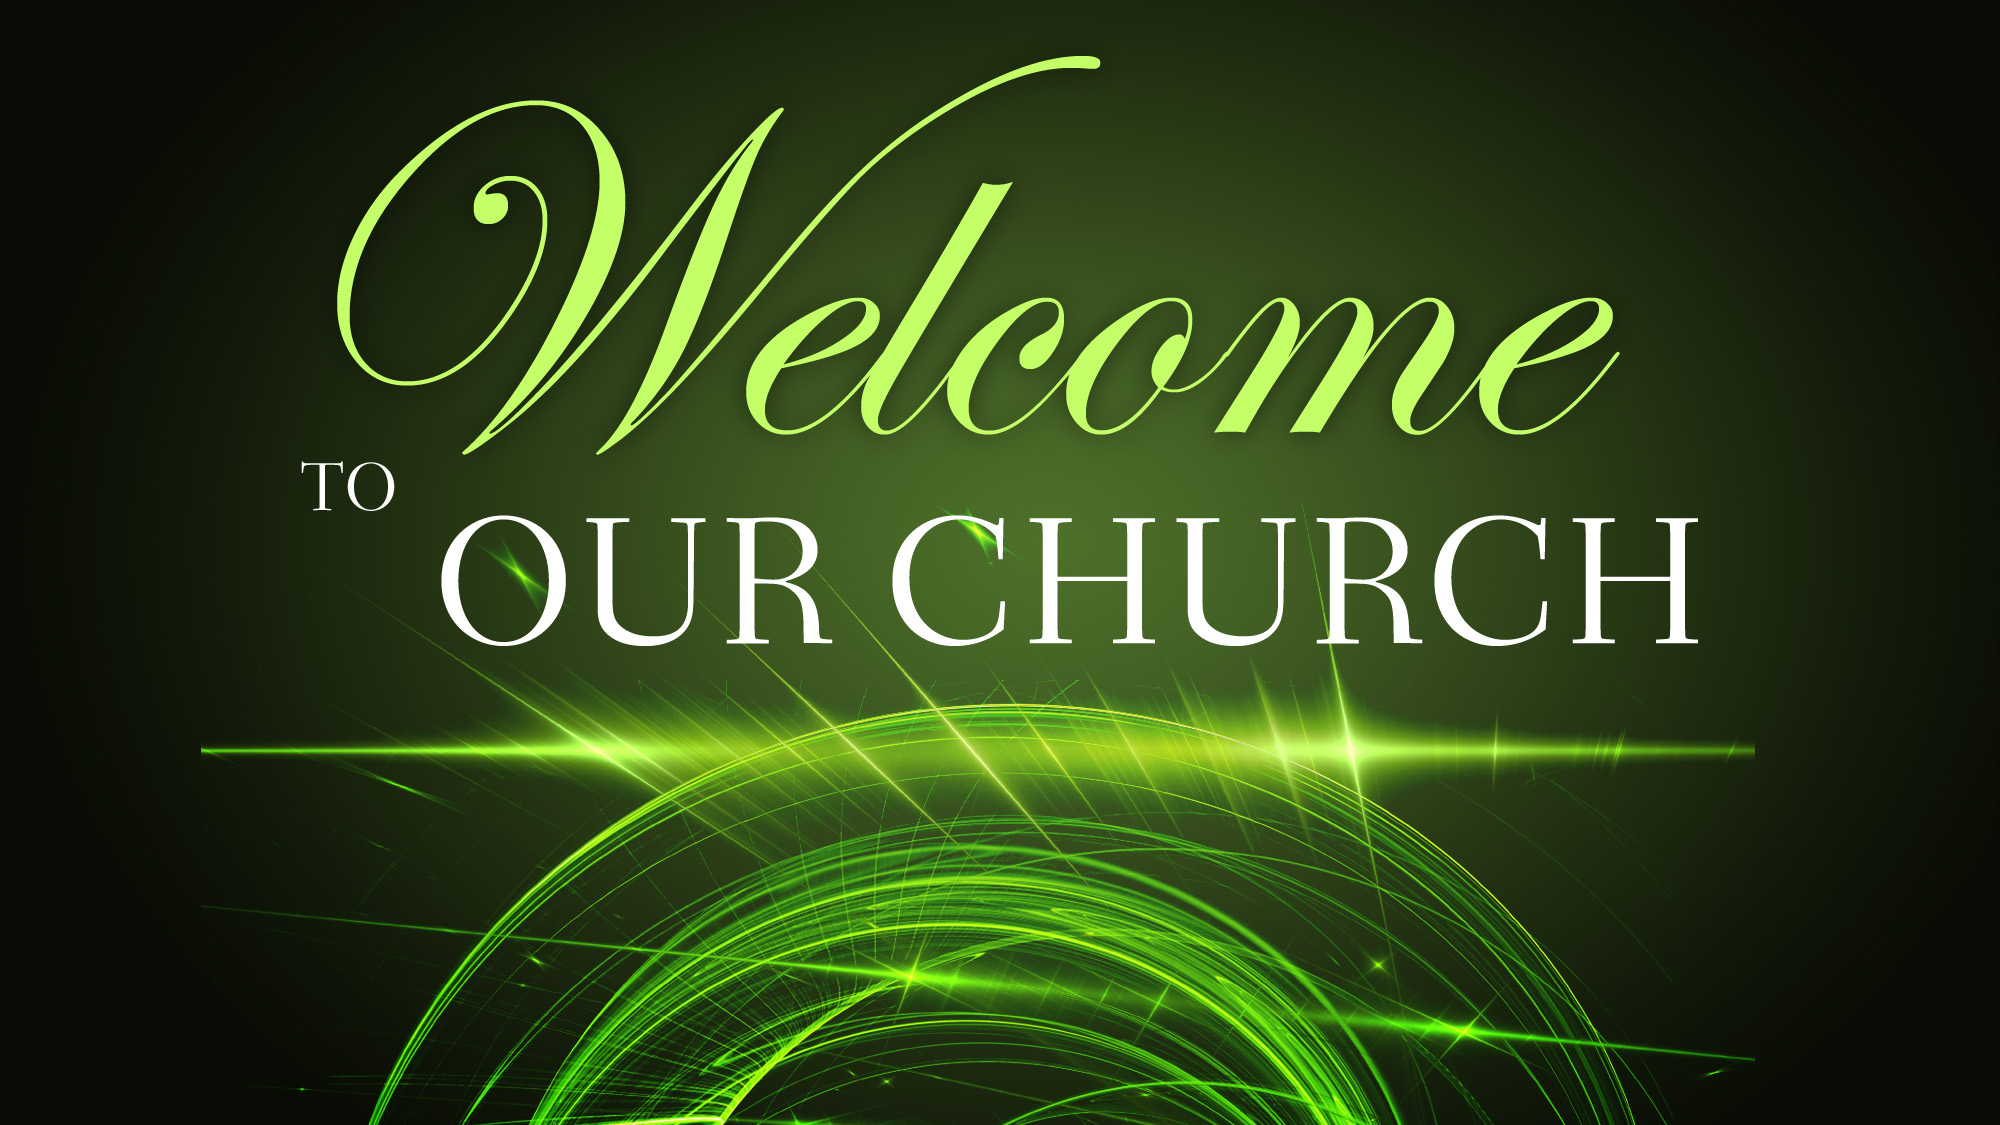 the gallery for gt welcome to our church backgrounds